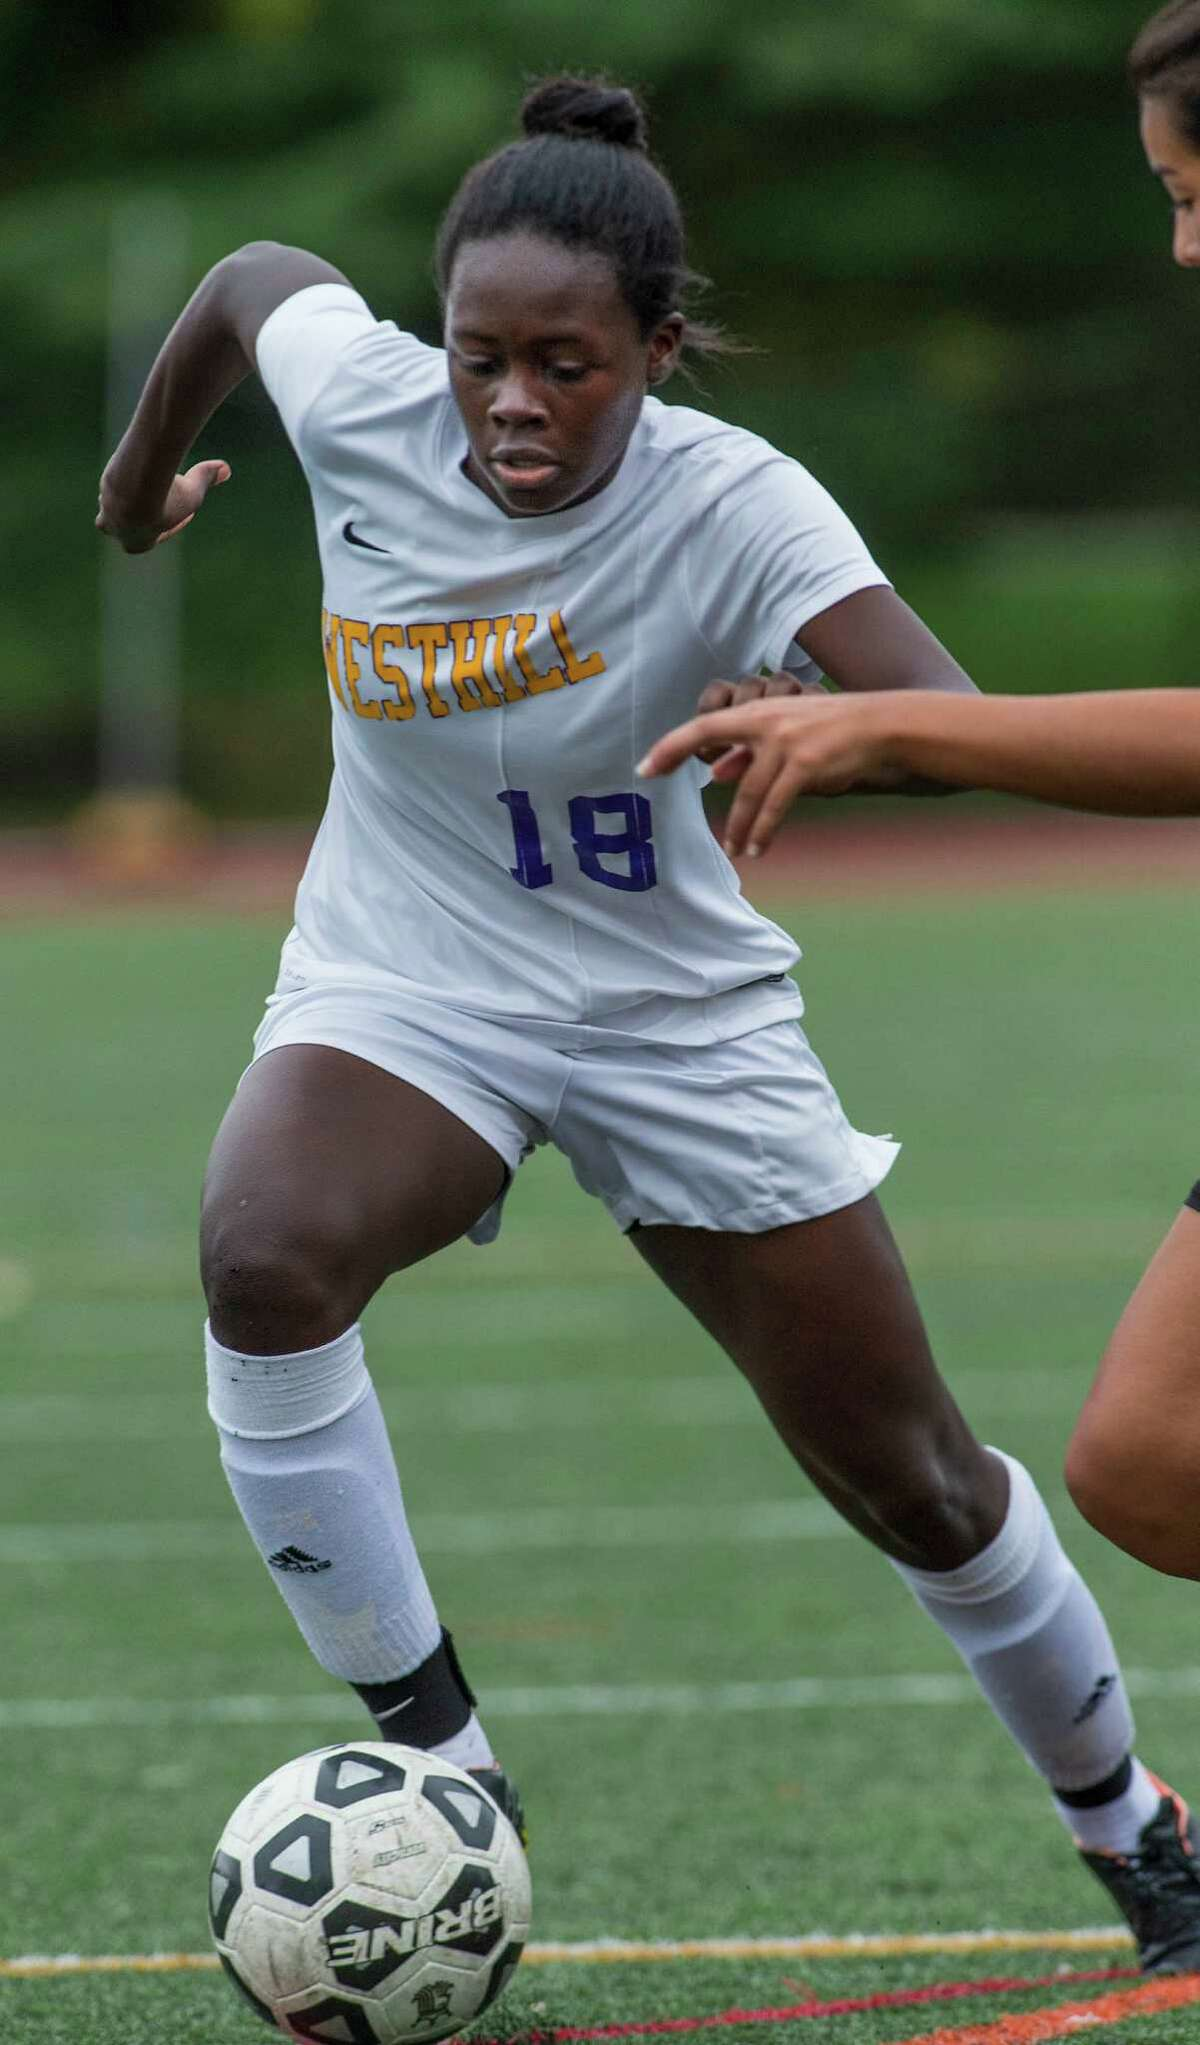 Westhill High School?'s Chelsea Domond moves the ball upfield during a girls soccer game against Stamford High School played at Westhill High School, Stamford, CT. Saturday, October 8, 2016.